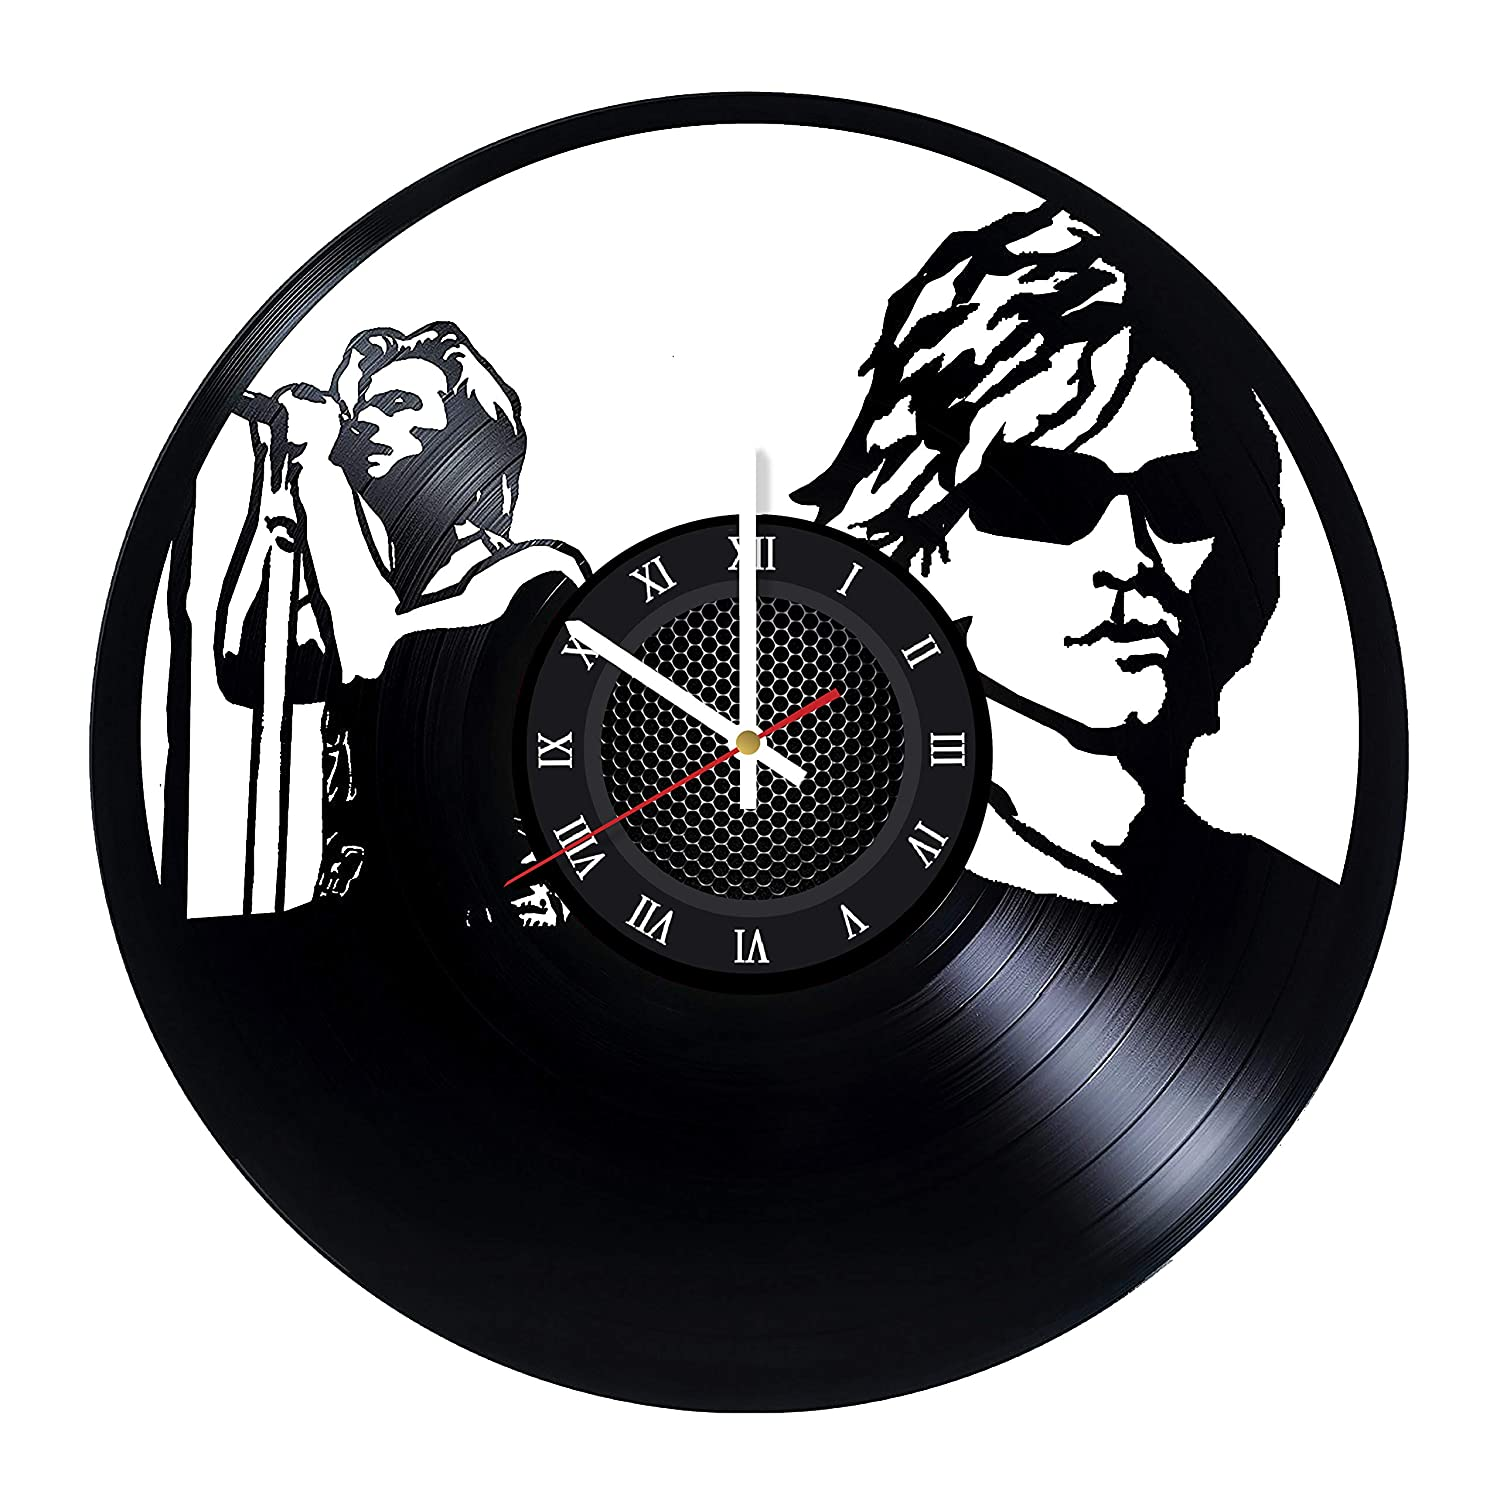 amazon whatsup store bon jovi rock band art vinyl record wall Bon Bon Cat The Barking amazon whatsup store bon jovi rock band art vinyl record wall clock wonderful bedroom or bathroom wall art decoration fancy gift idea for his or